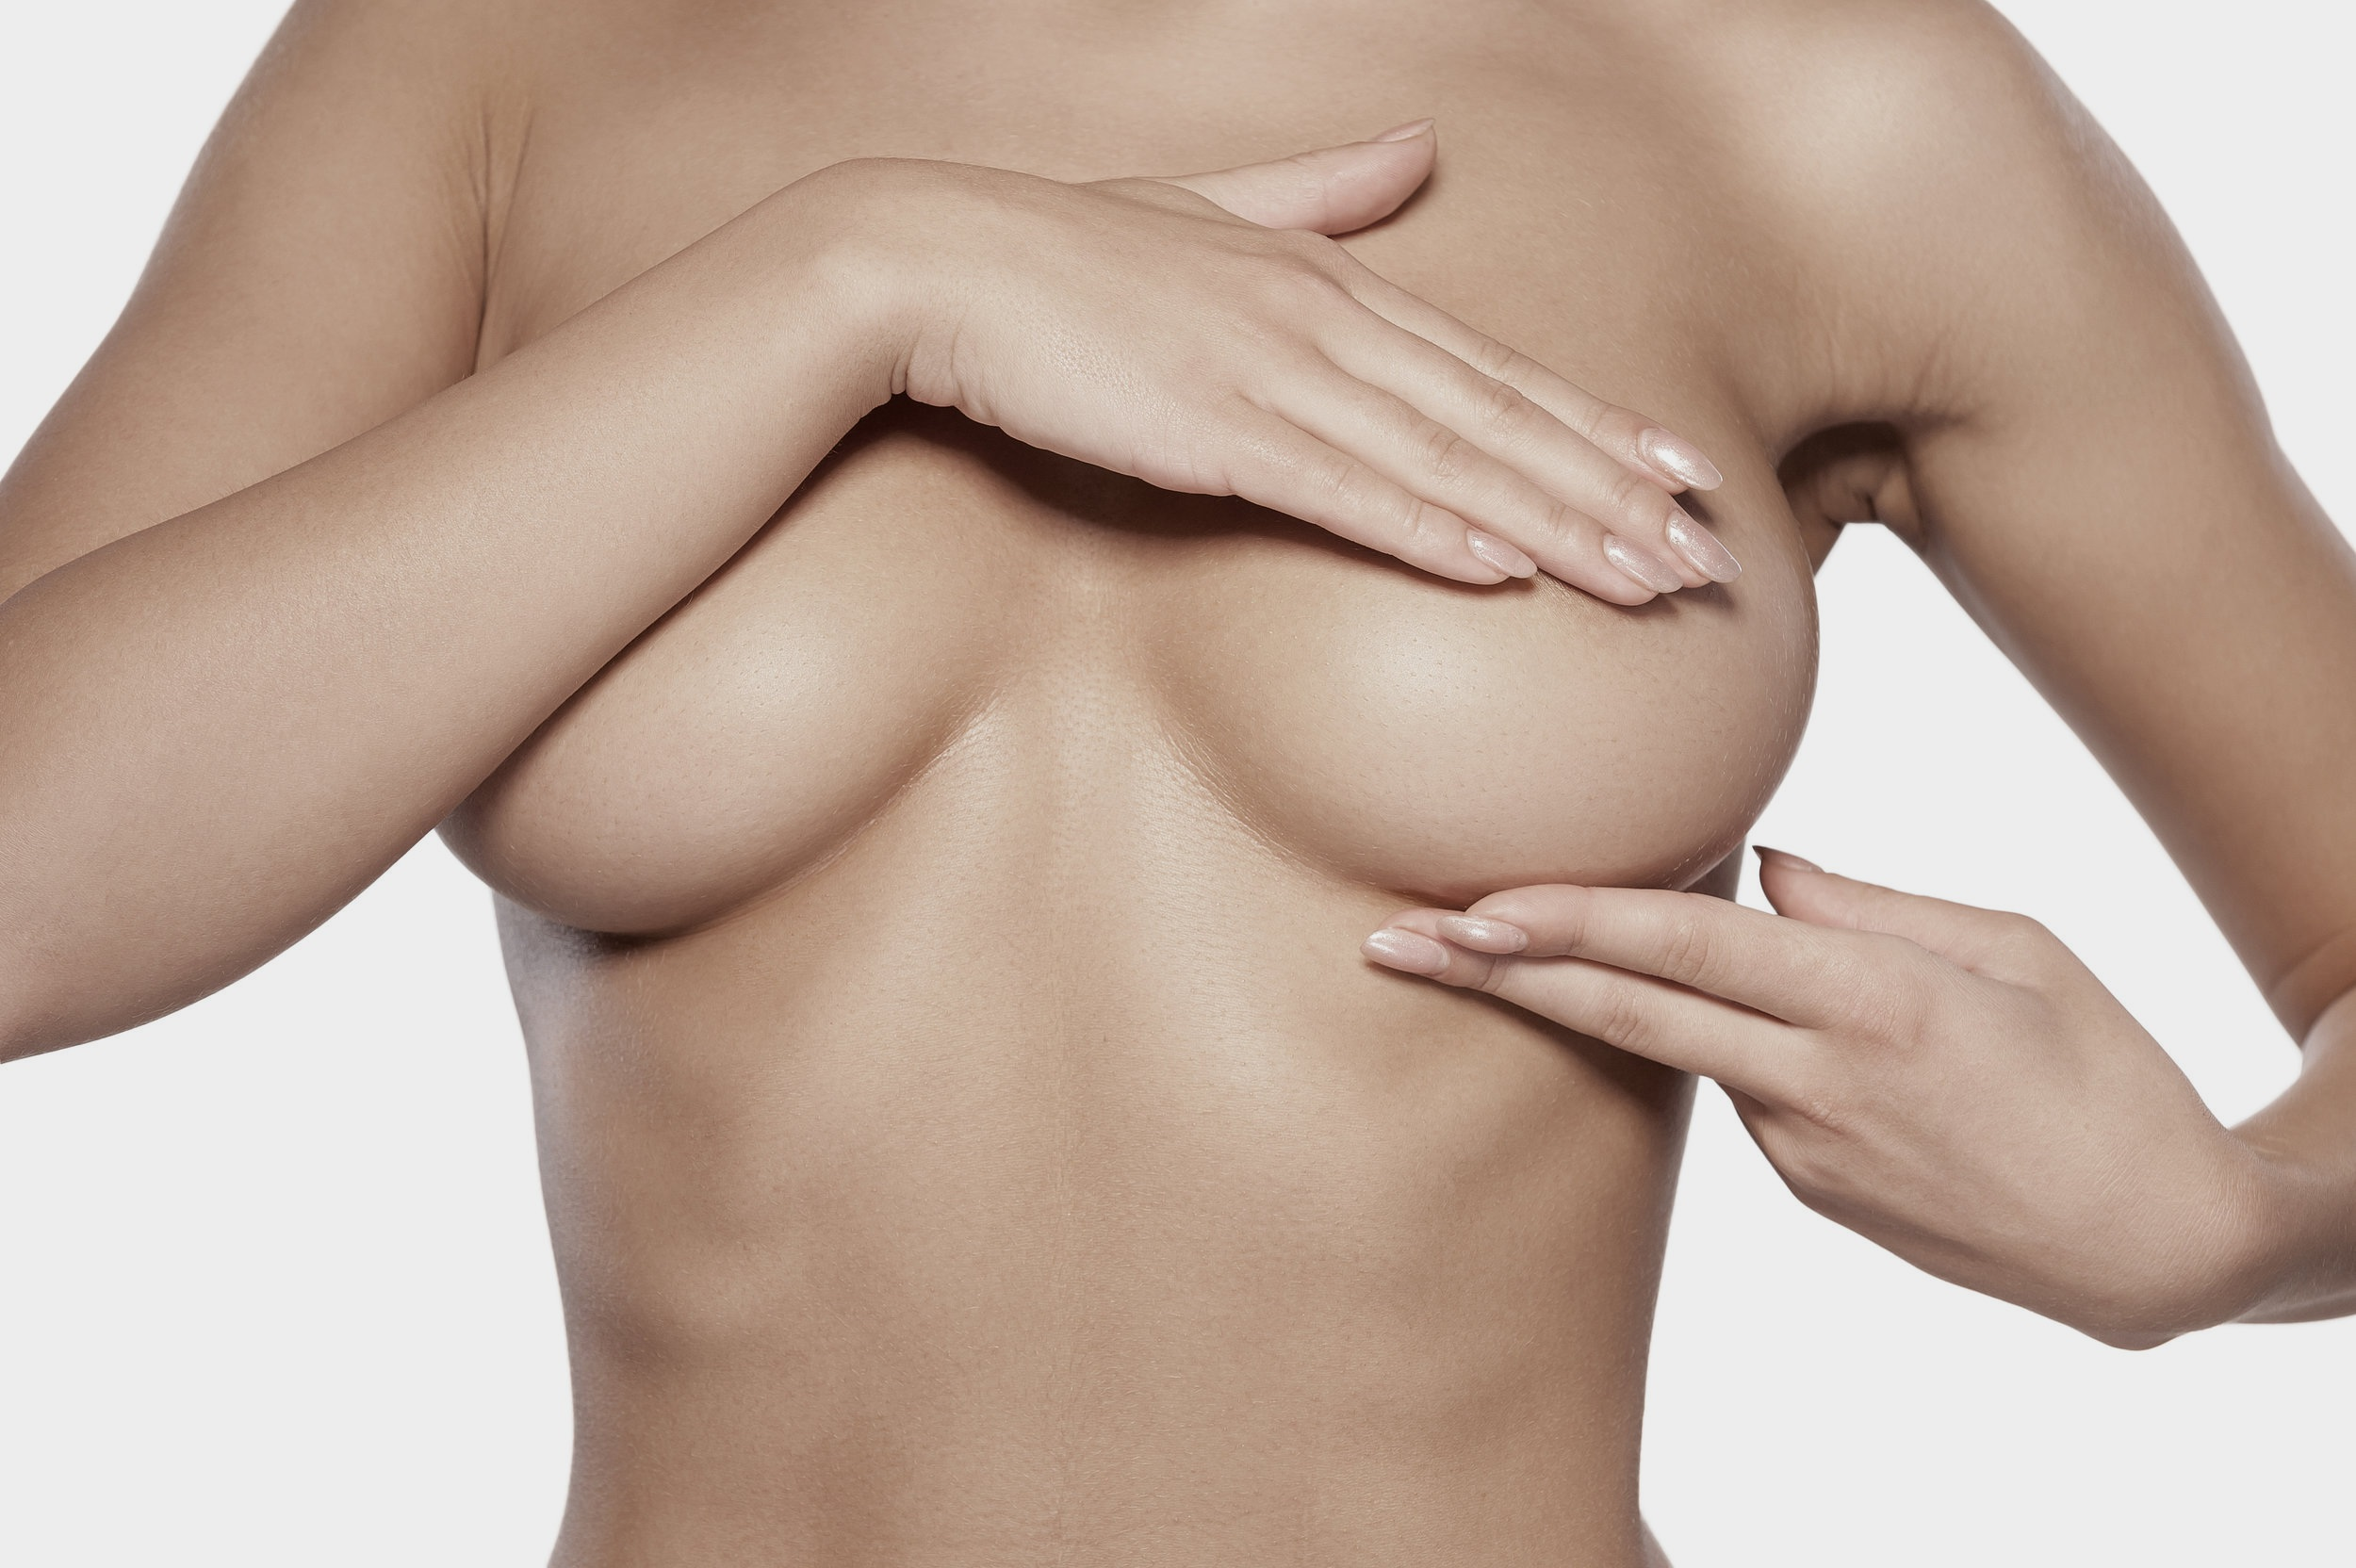 KEY TREATMENT AREAS - Vegan breast augmentation results in breast appearing larger, firmer and fuller -without using silicone breast implants. This can help women who are unhappy with the size and shape of the breasts following pregnancy, advancing age or weight loss. Implants can also be used to correct asymmetry or for reconstruction after breast cancer.